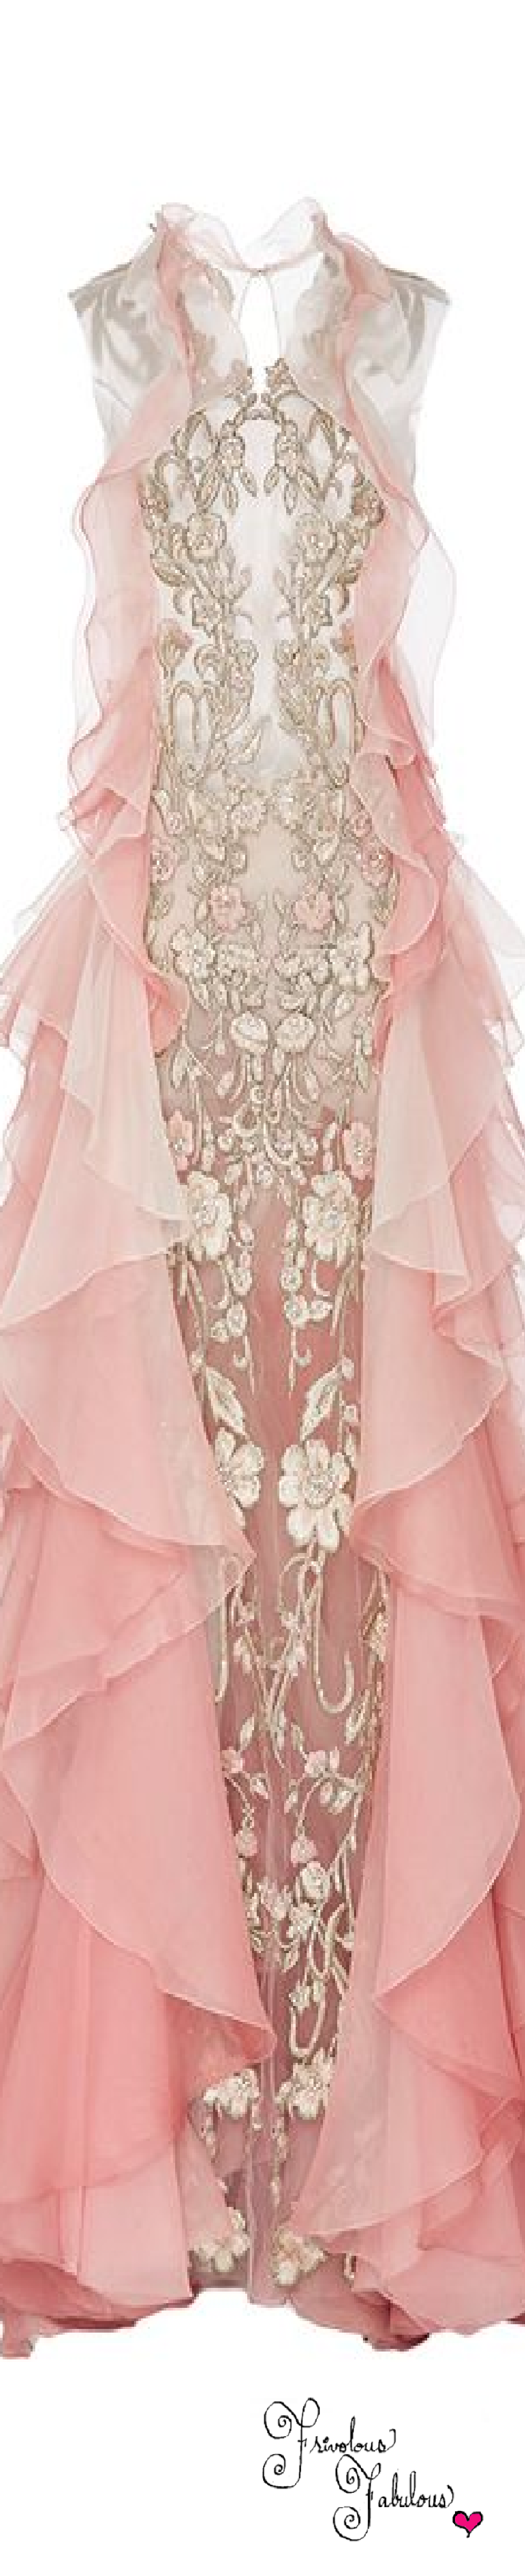 Frivolous Fabulous - Marchesa Ombre Gown with Organza Layers  Fall Winter 2016